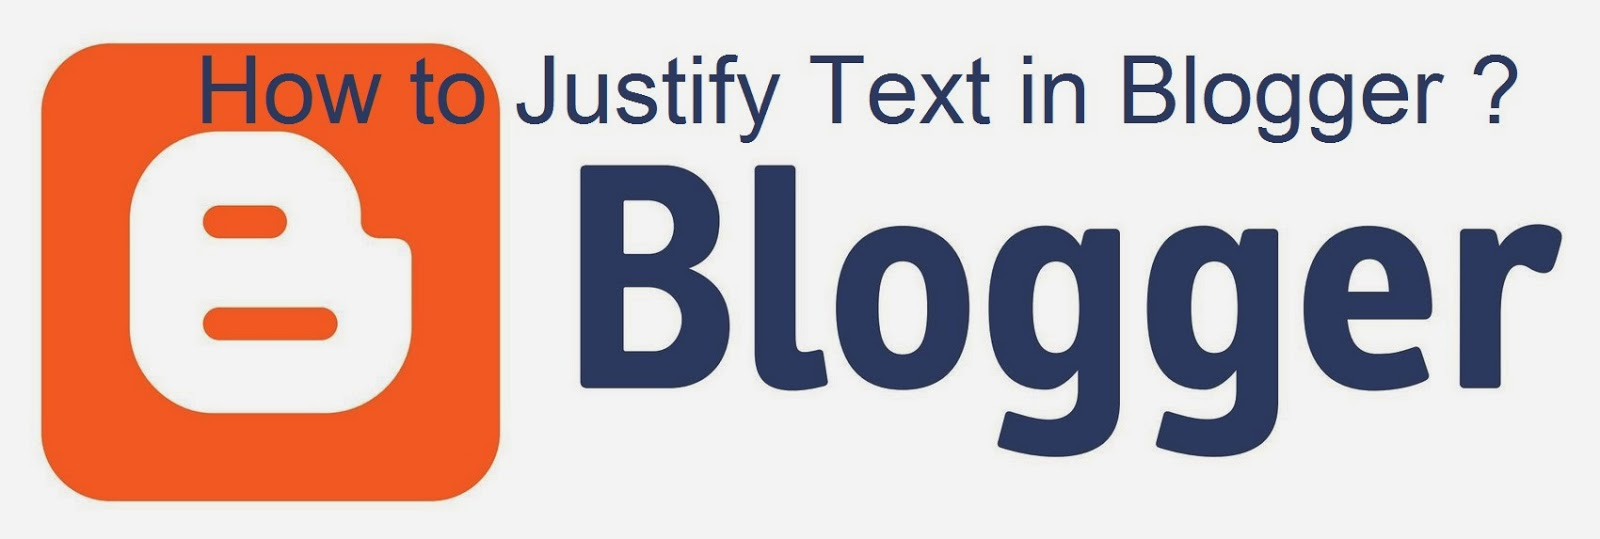 How to Justify Text in Blogger : eAskme